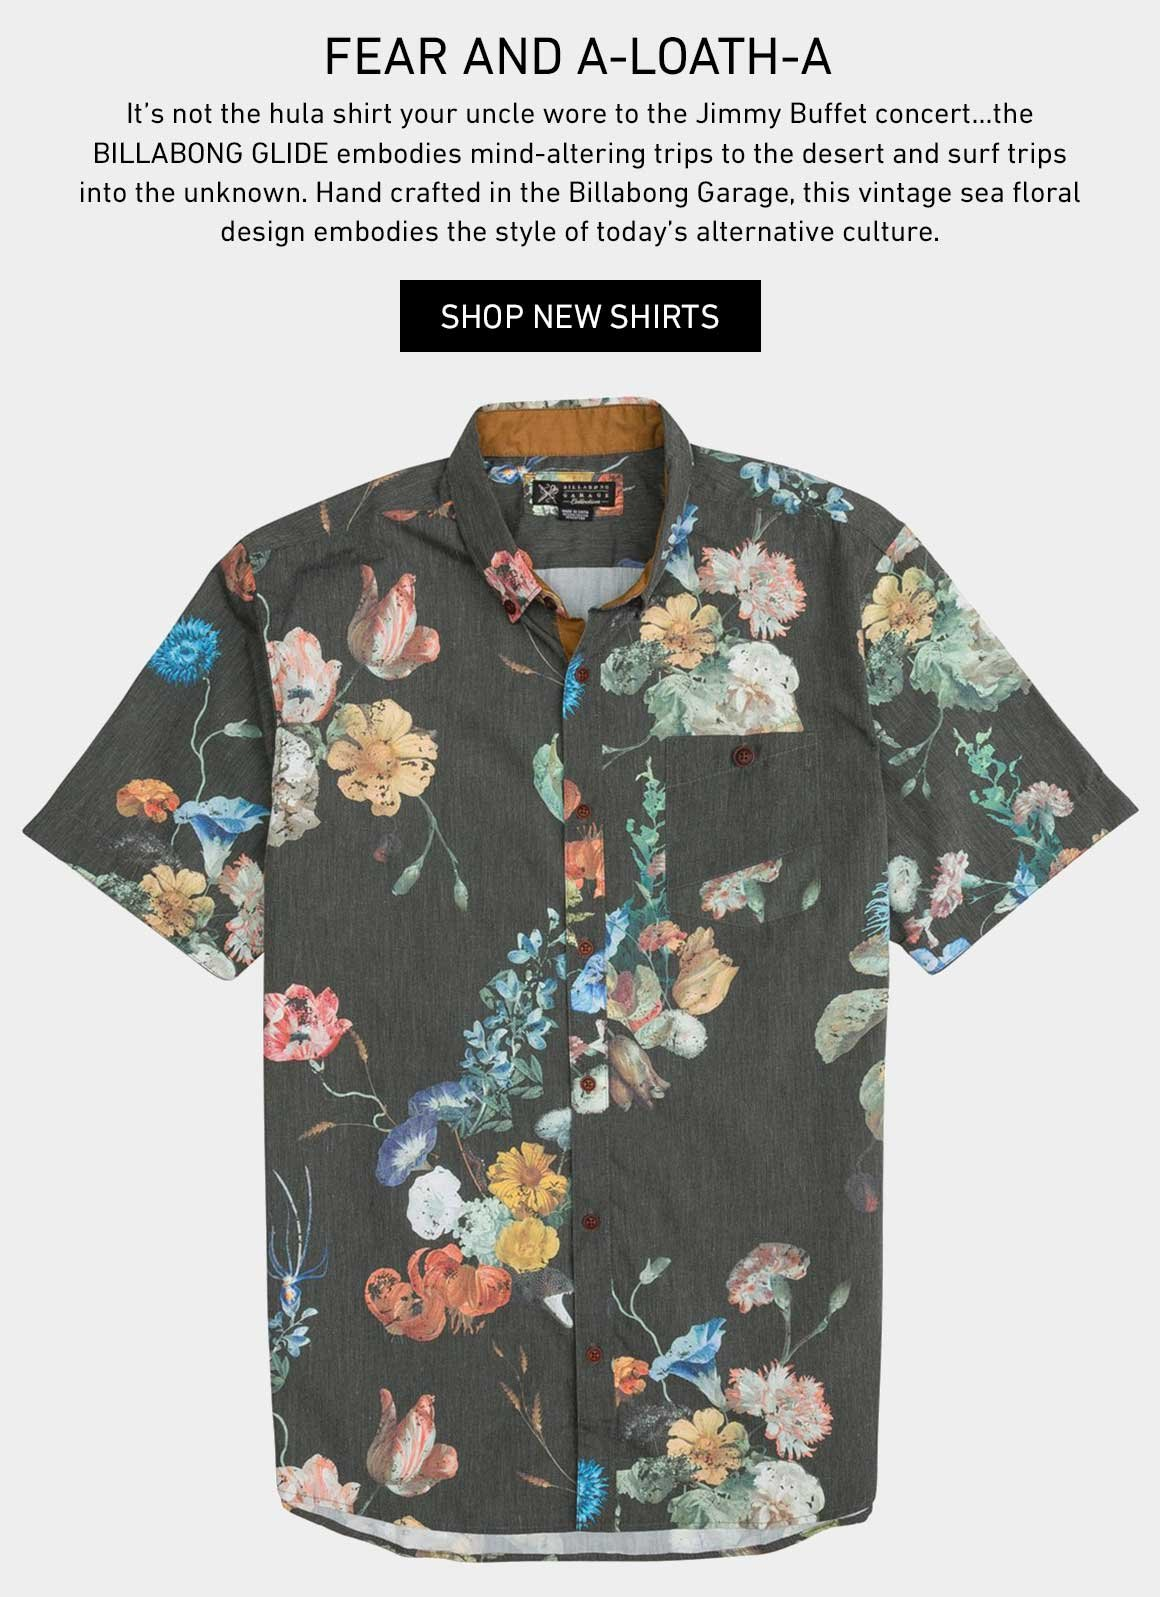 Fear and A-loath-A Friday: Shop New Shirts